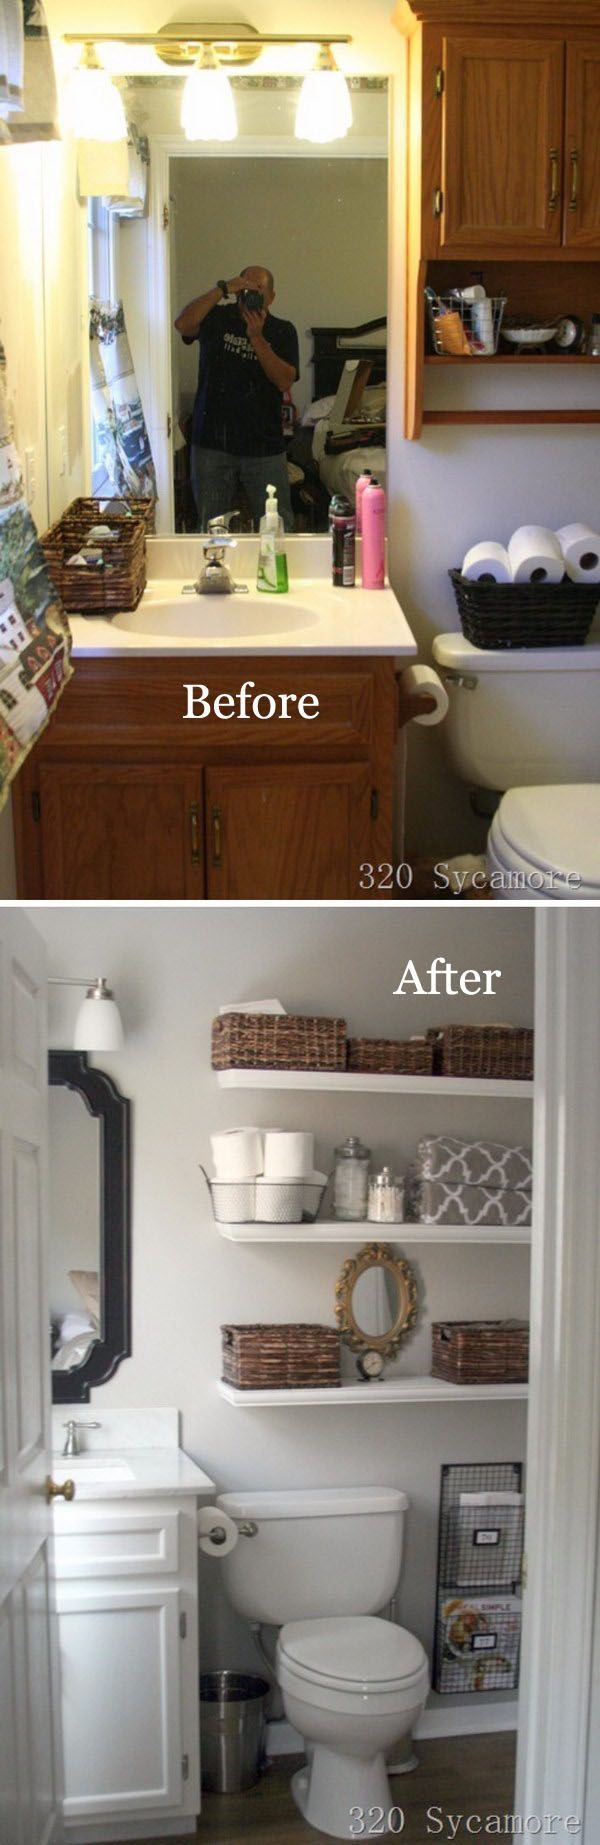 Shelving Ideas For Small Bathrooms Enchanting Best 25 Small Bathroom Storage Ideas On Pinterest  Small Decorating Design